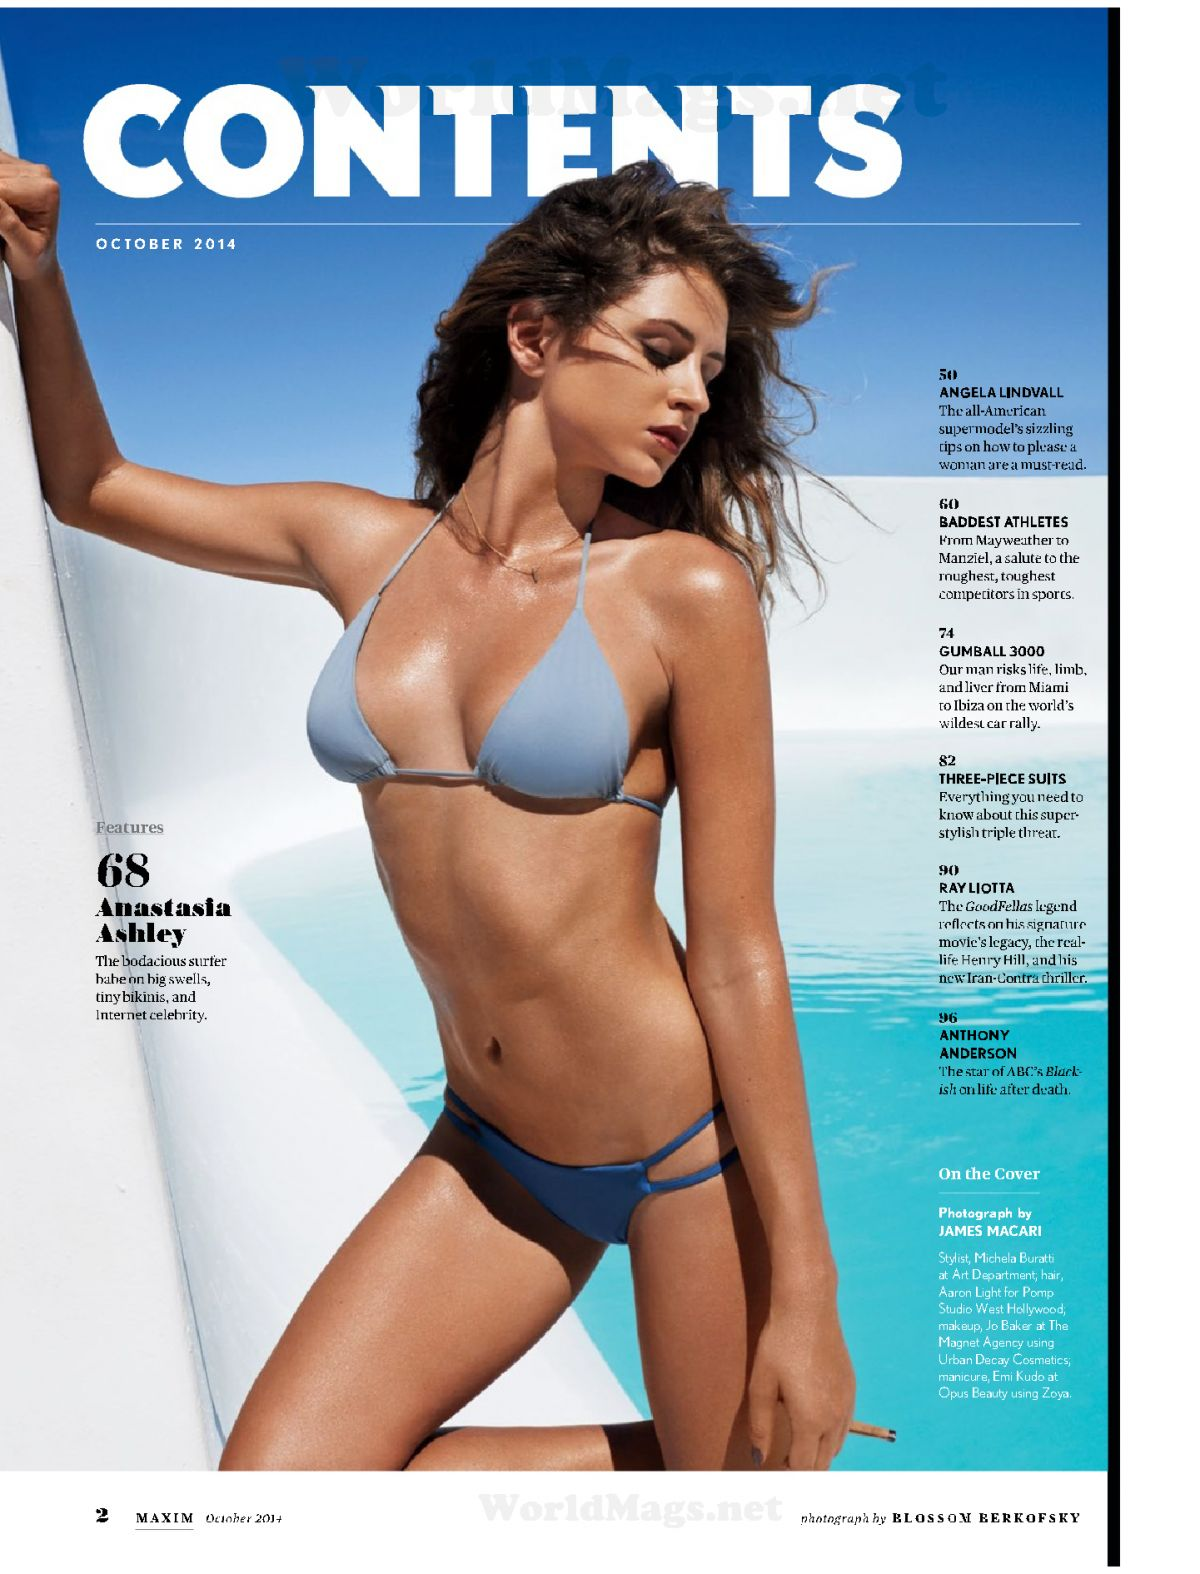 ANASTASIA ASHLEY in Maxim Magazine, October 2014 Issue